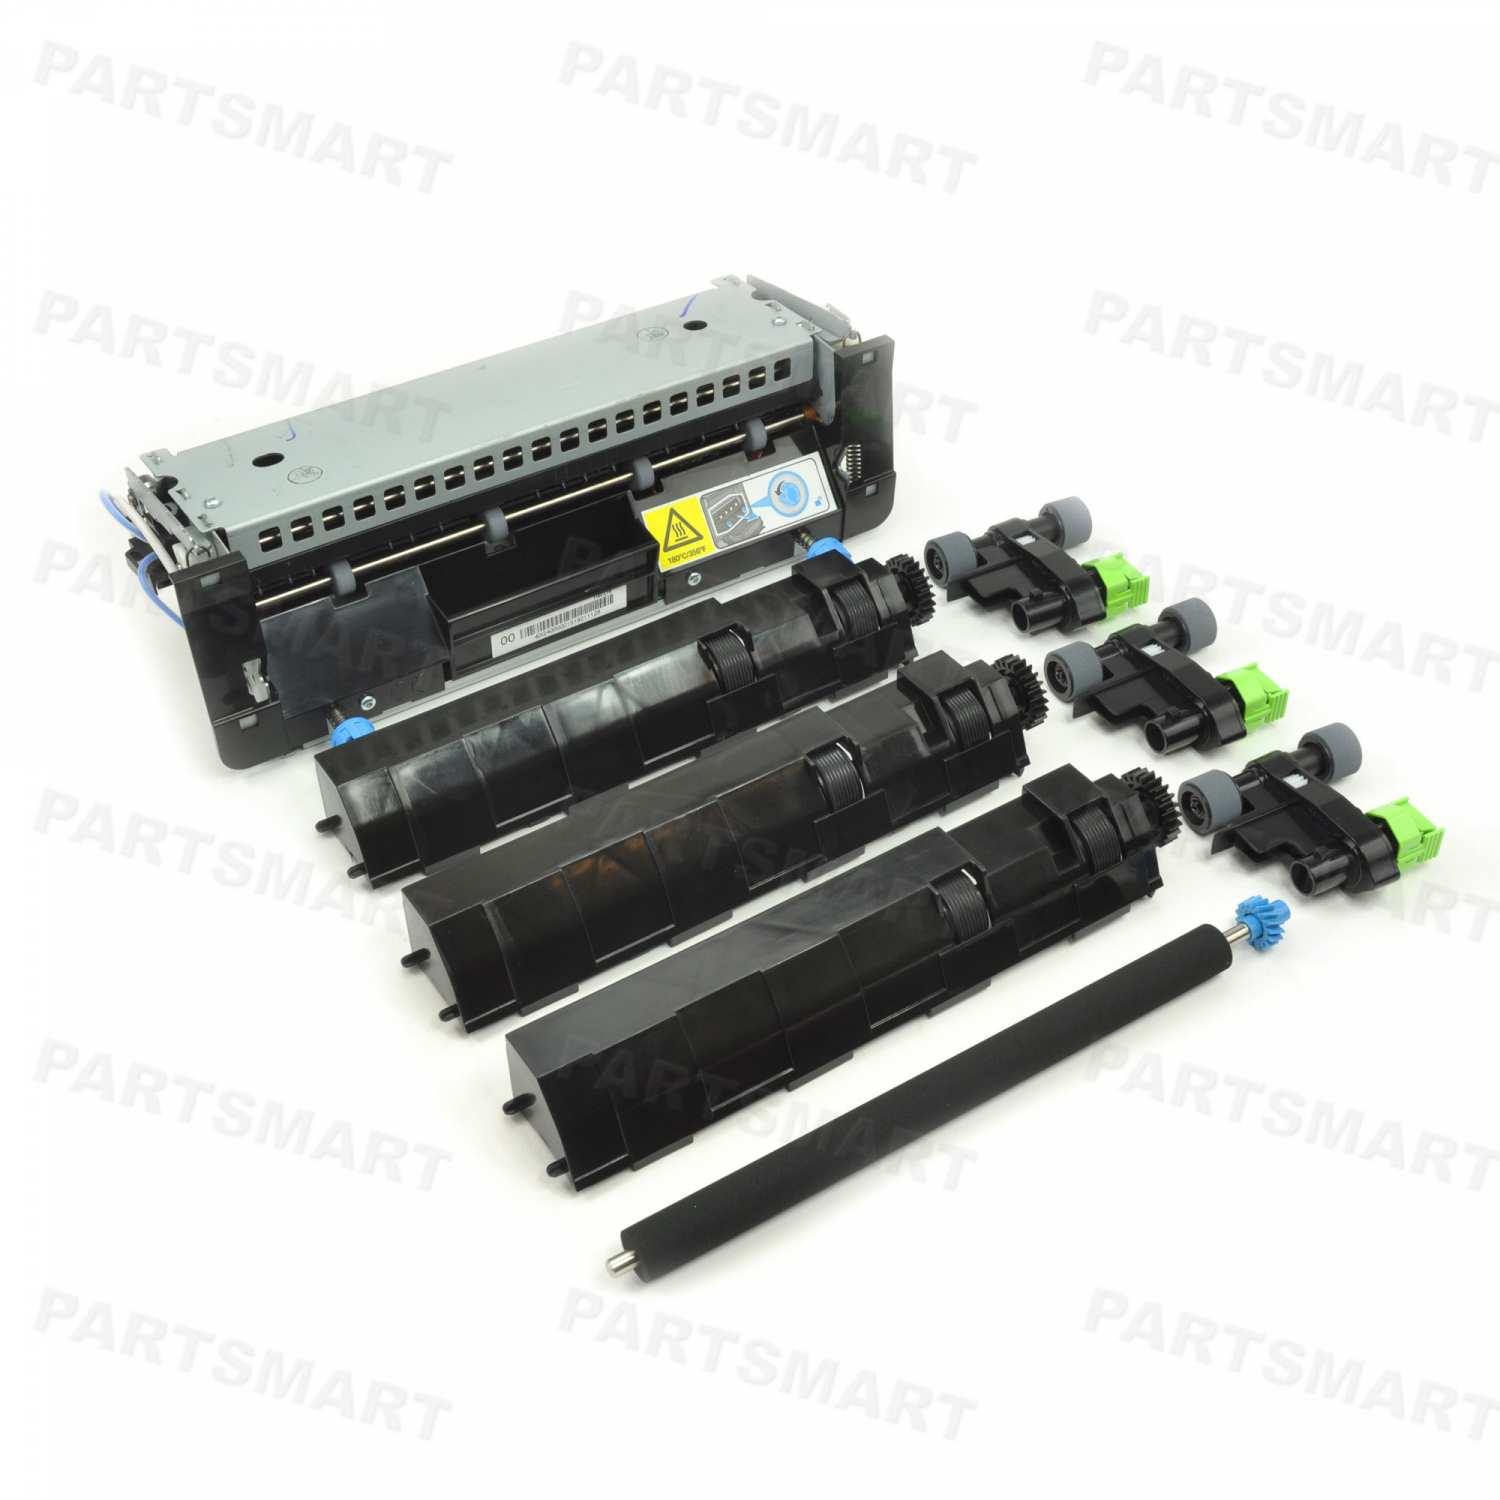 40X8420 Maintenance Kit (110V) for Lexmark MS810